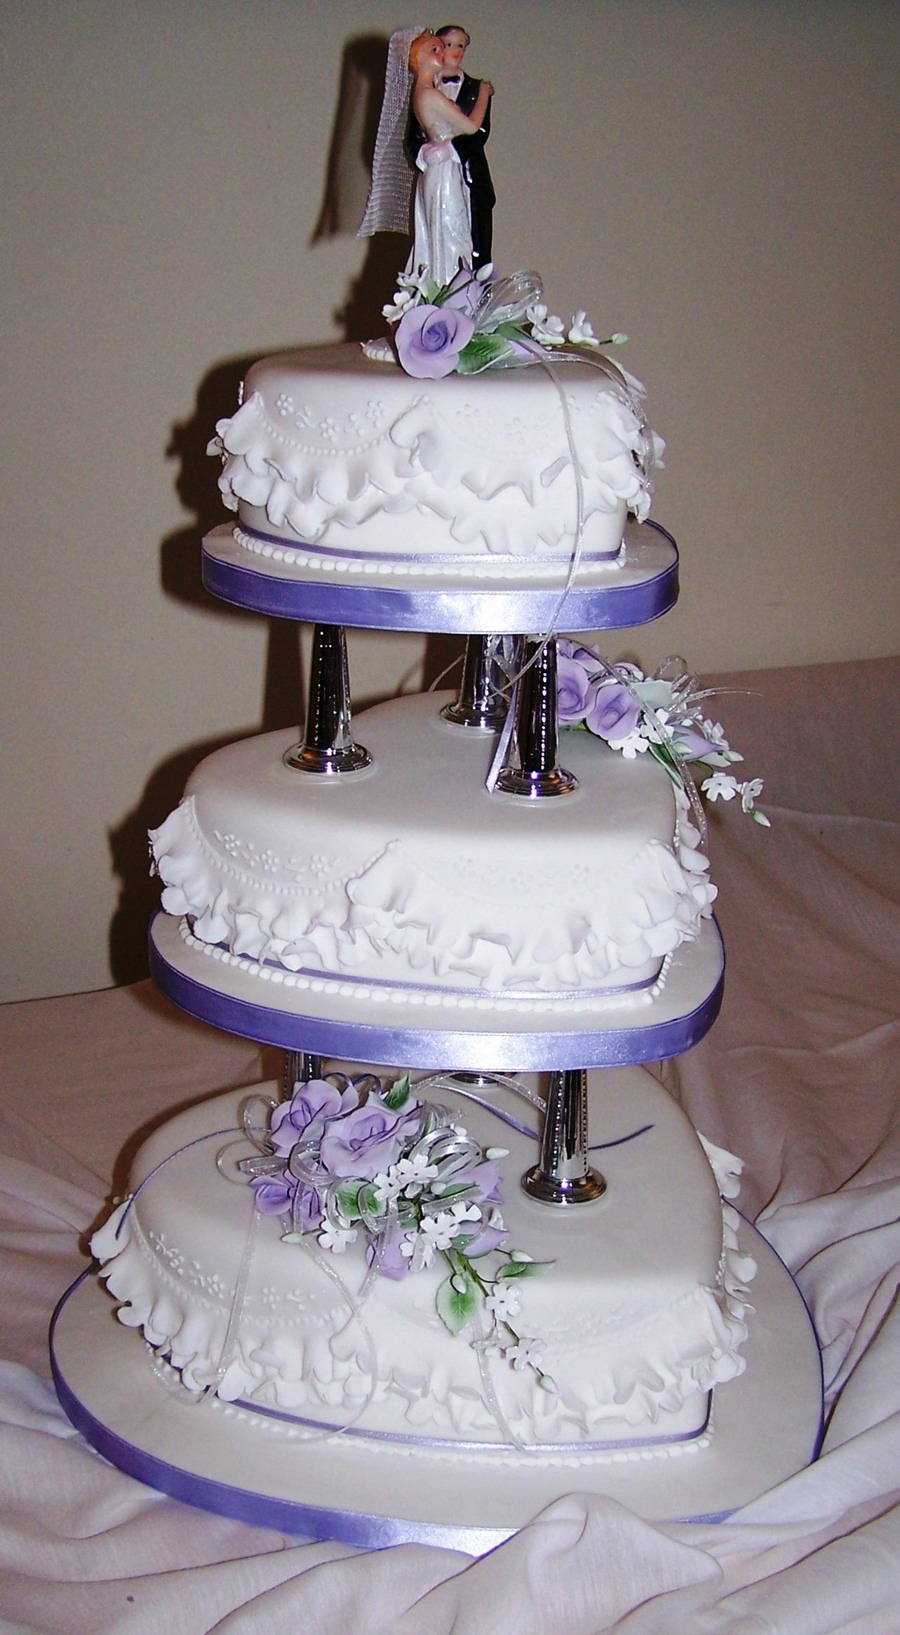 top tier of wedding cake traditions 3 tier shaped cake on pillars with gumpaste flowers 21071